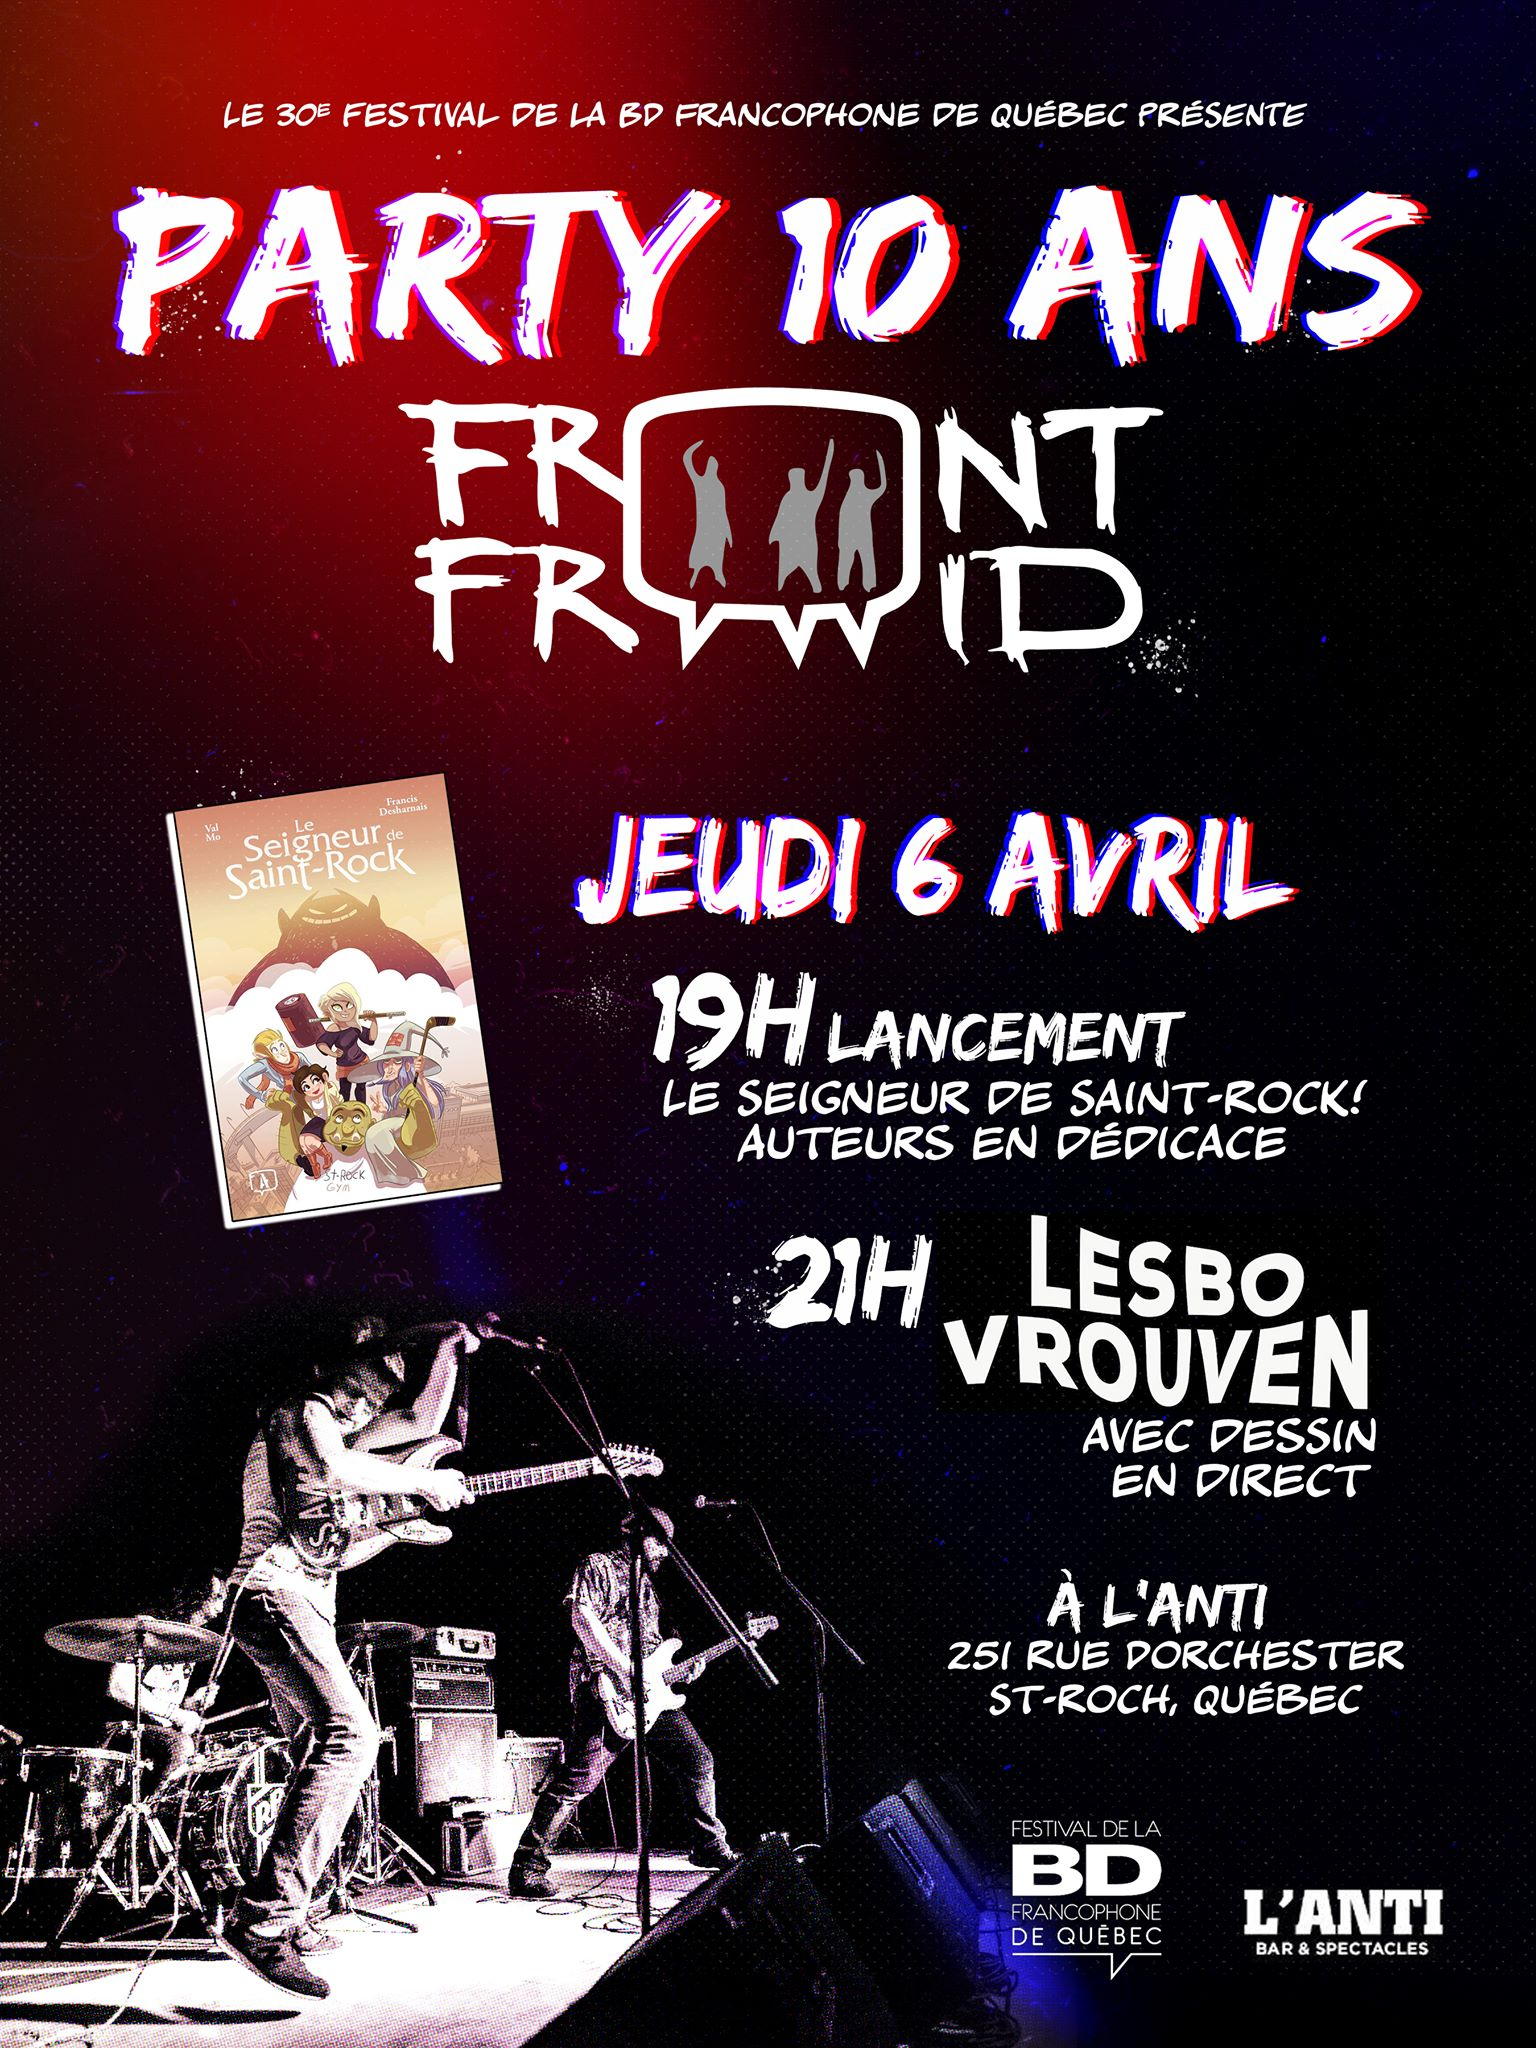 Party 10 ans Front Froid + Lesbo Vrouven